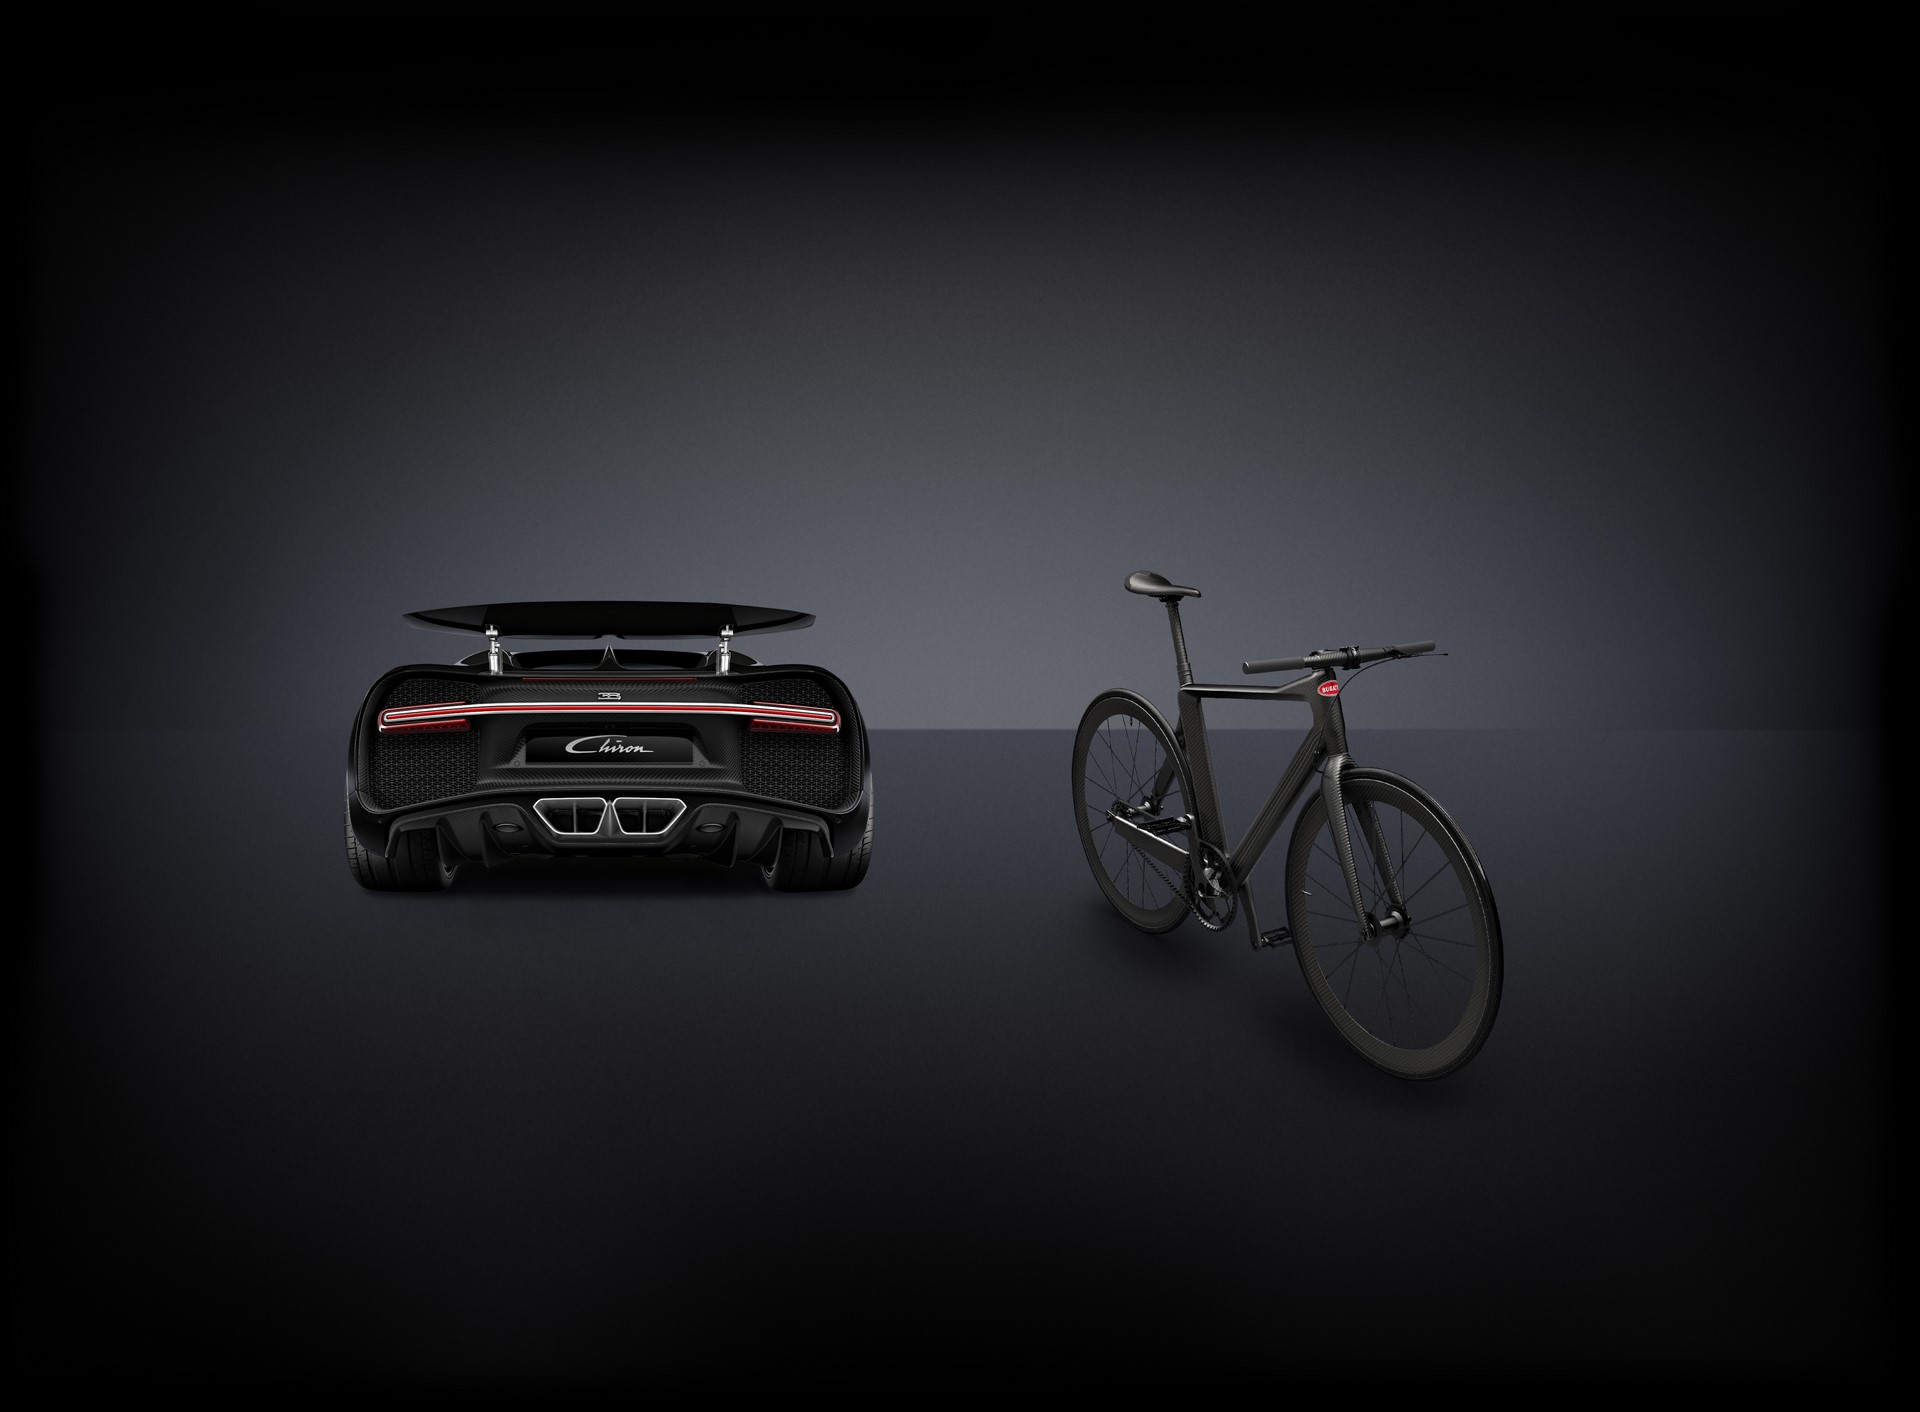 PG Bugatti bicycle (2)a